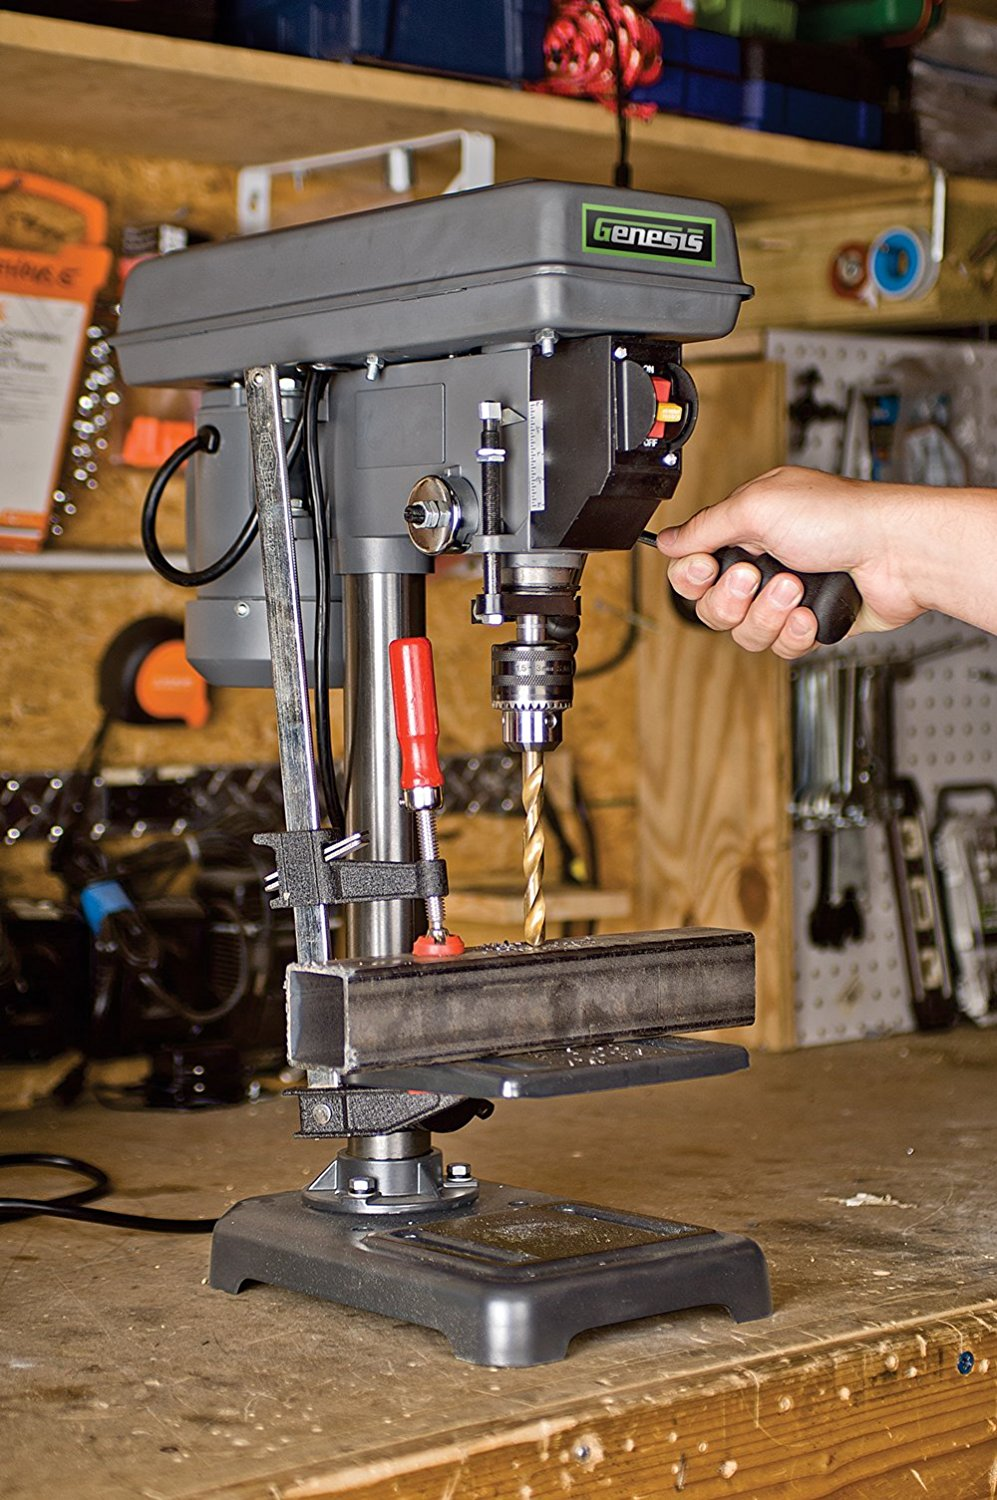 Genesis GDP805P 8 drill press